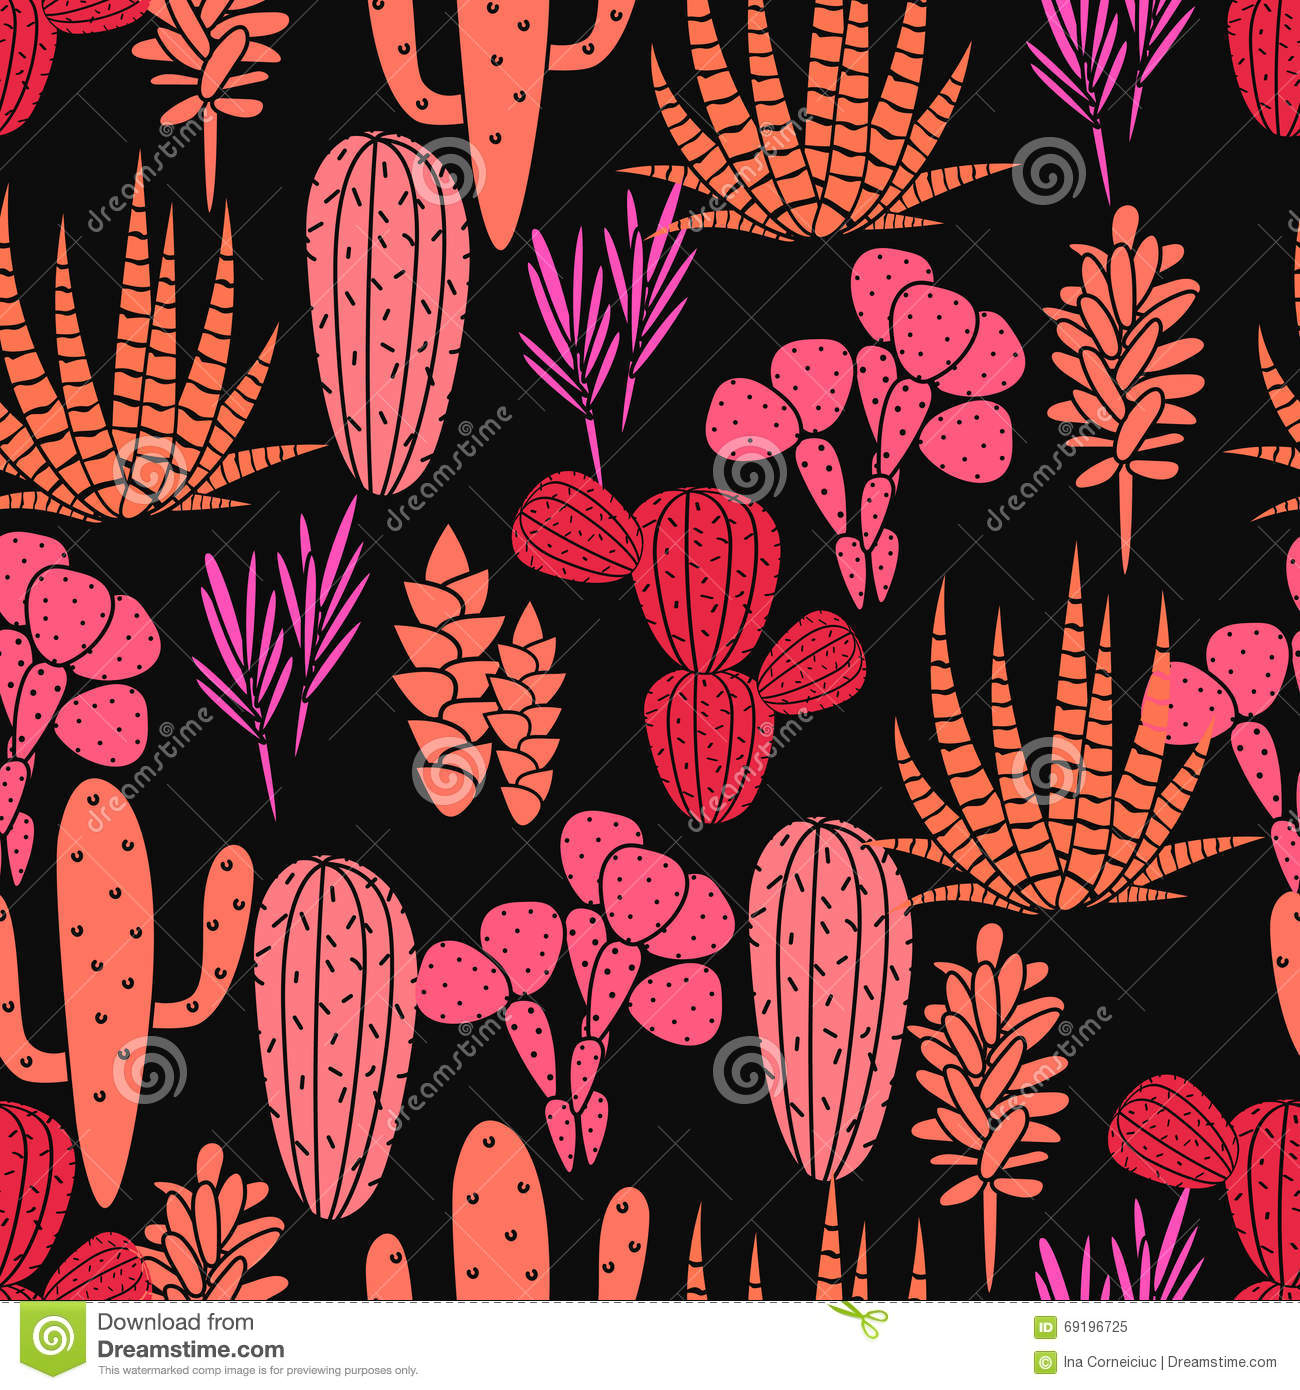 Tropical Home Decor Fabric Succulents Plant Vector Seamless Pattern Botanical Black